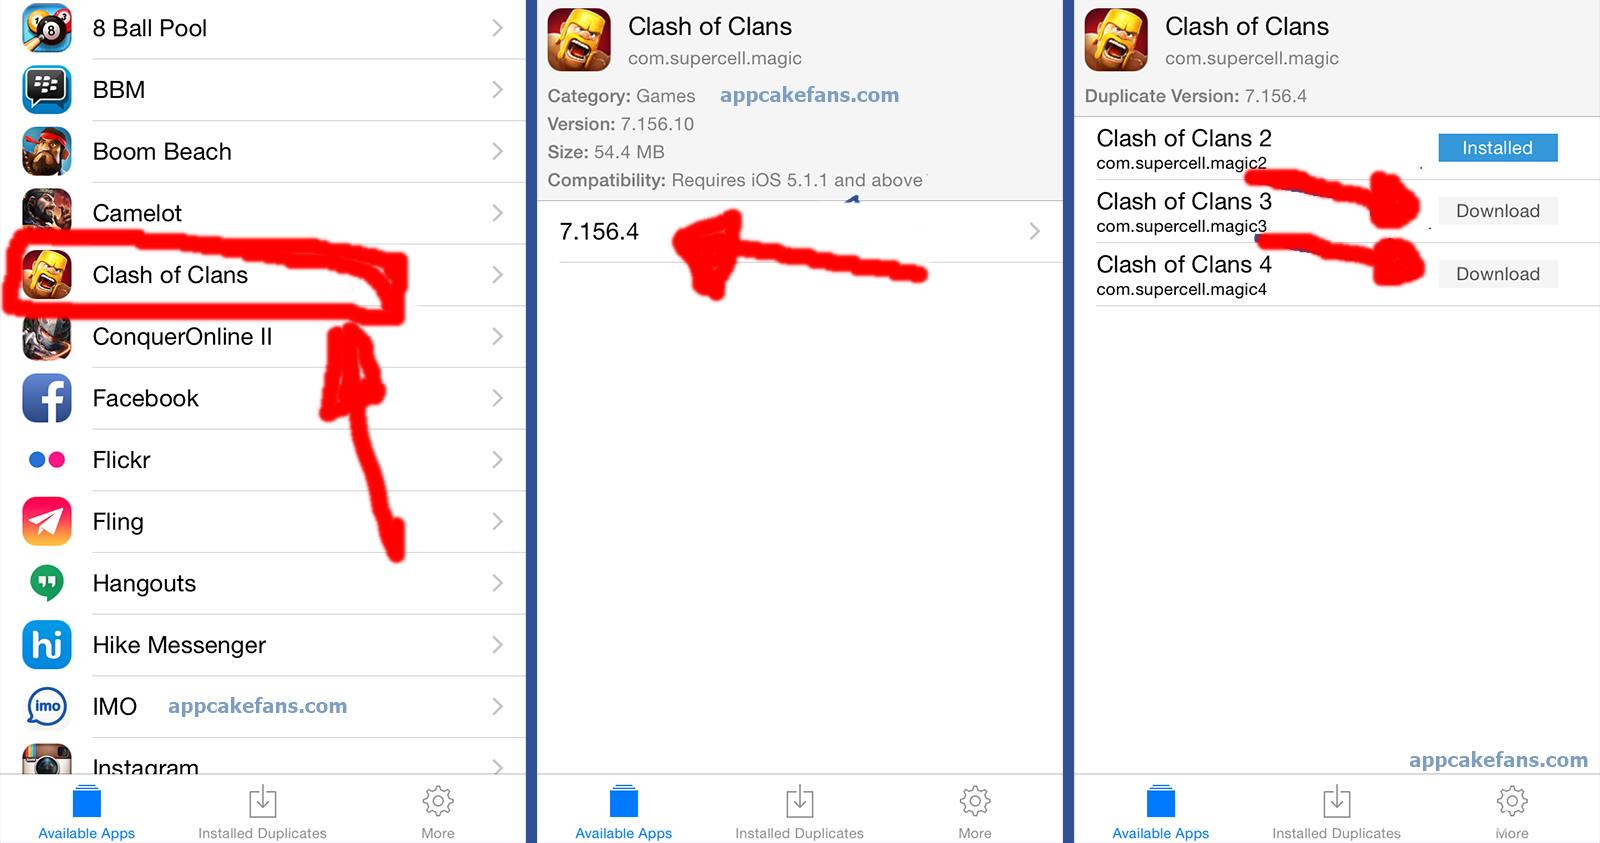 2 Clash of Clans accounts on iOS Apple device